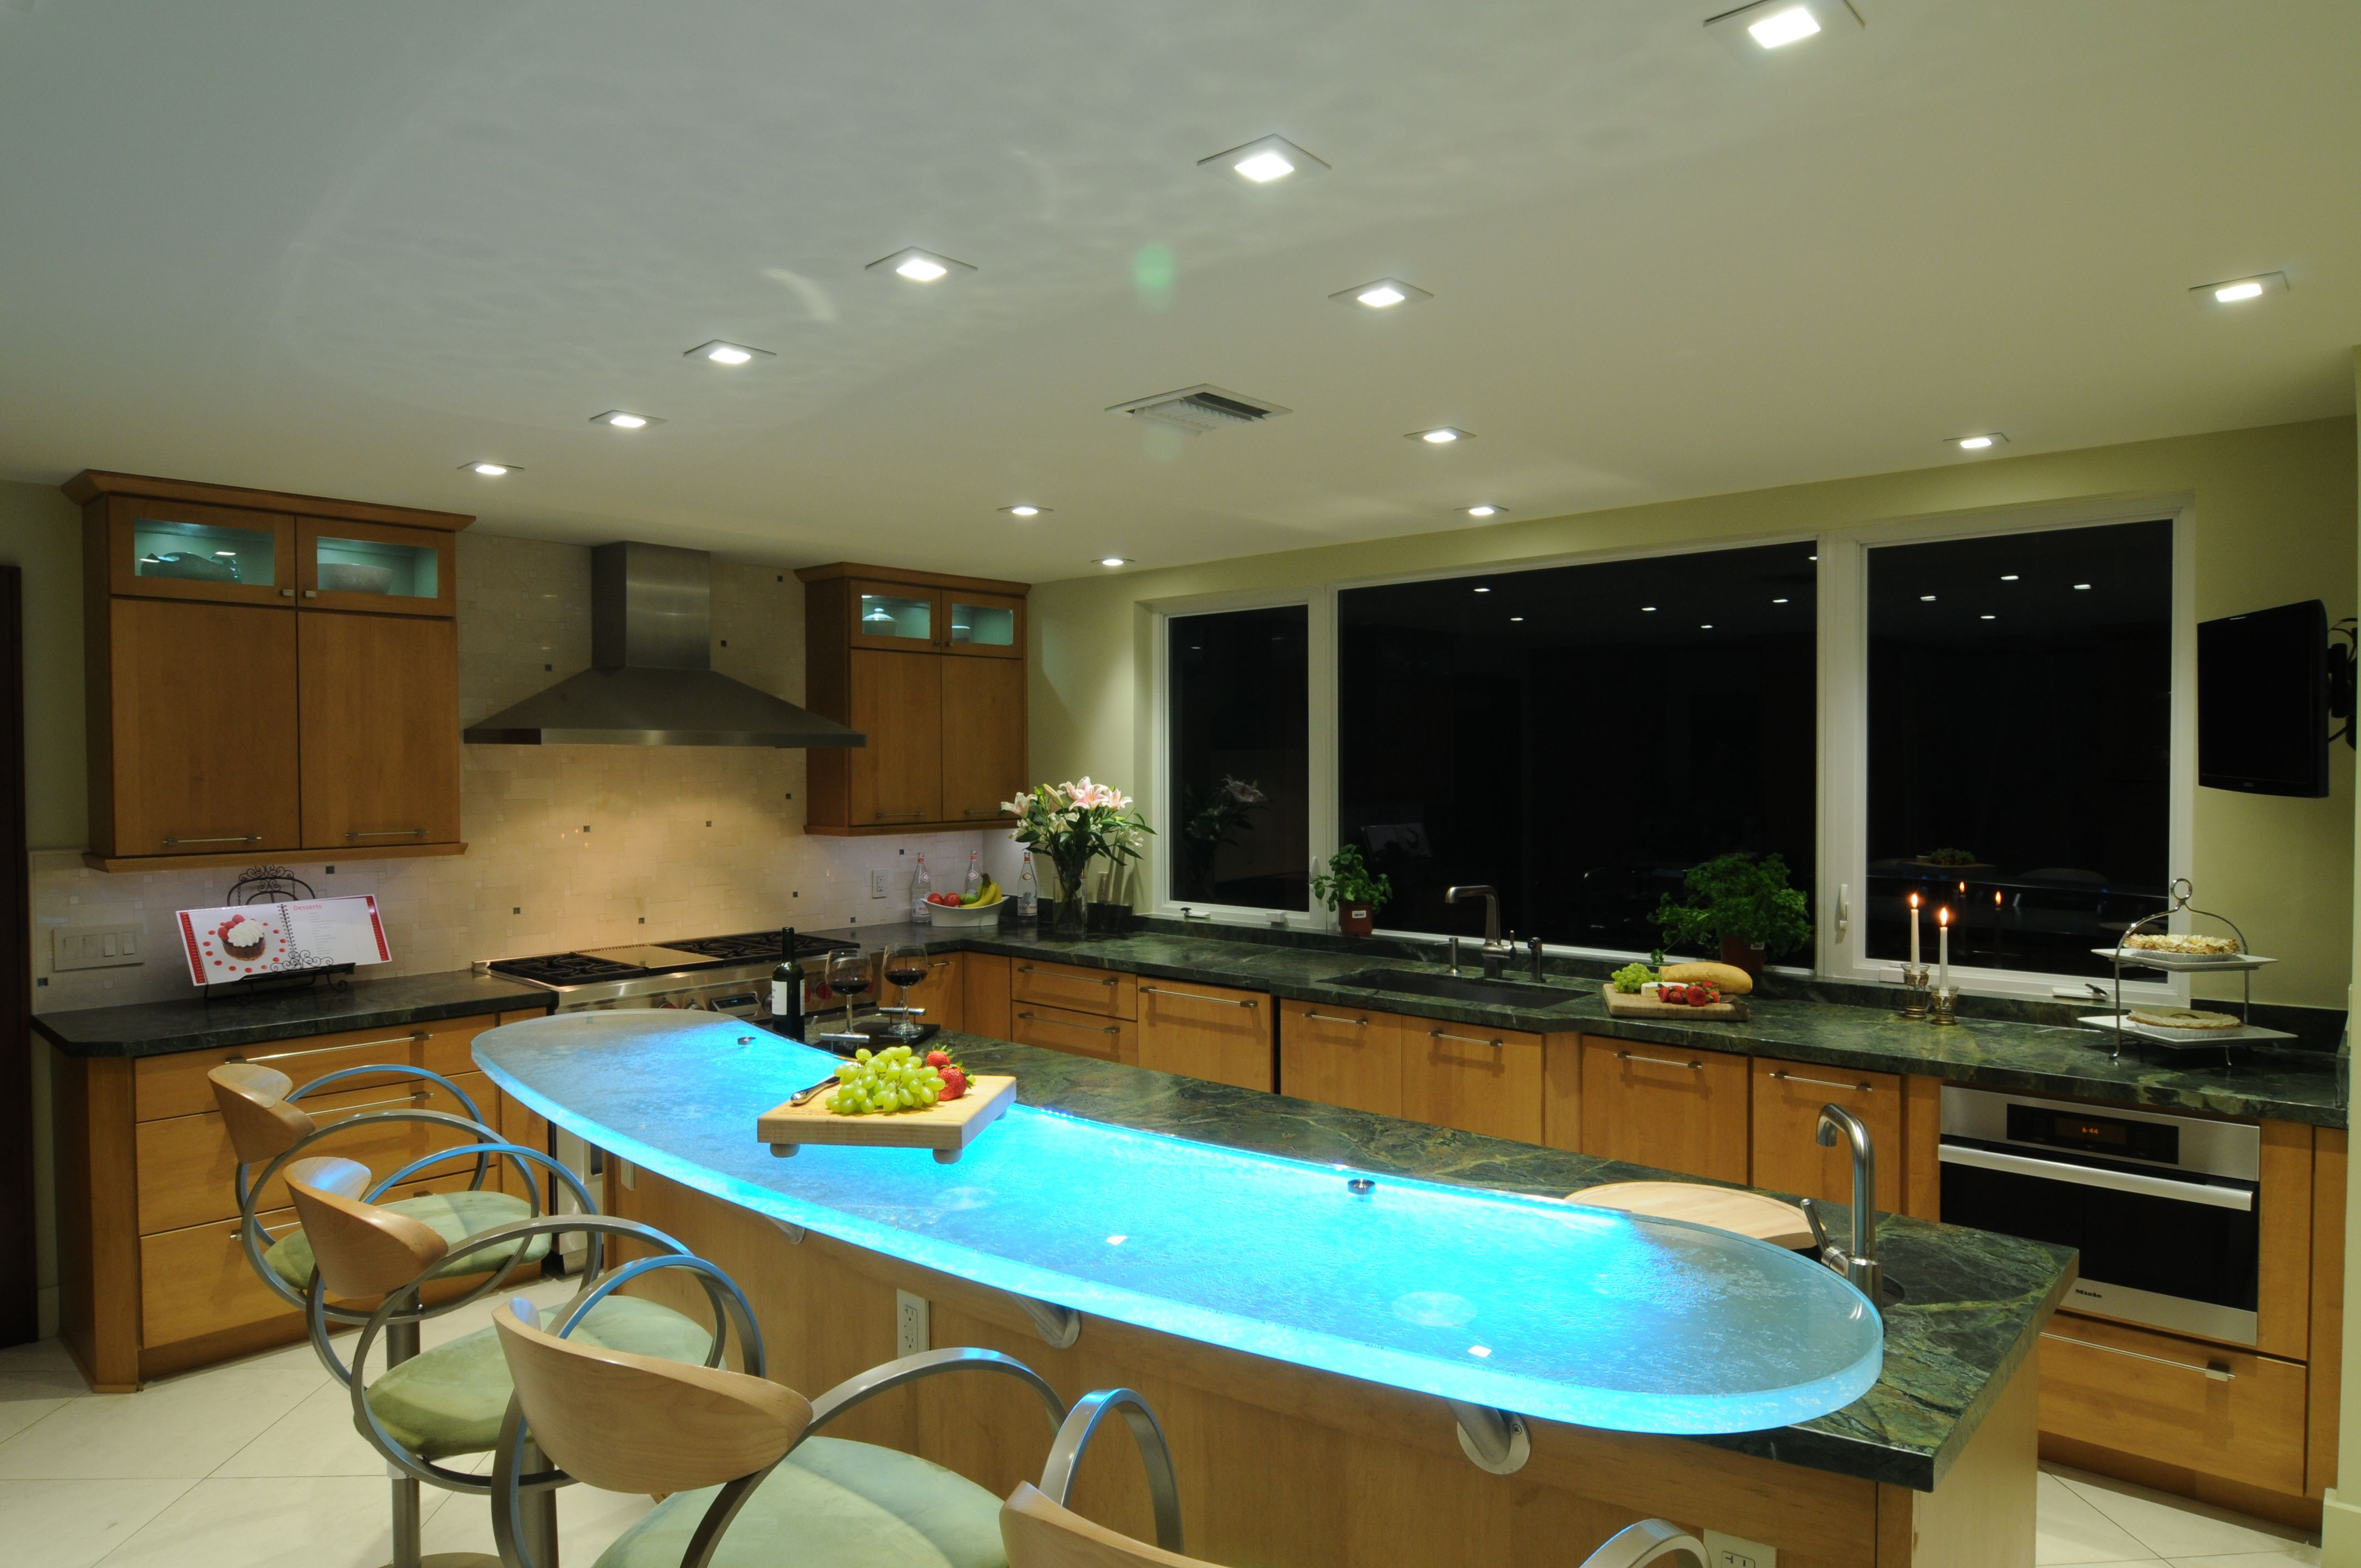 Think Glass Countertops Kitchen Remodel Done By Us By Combining Glass Countertops And Led